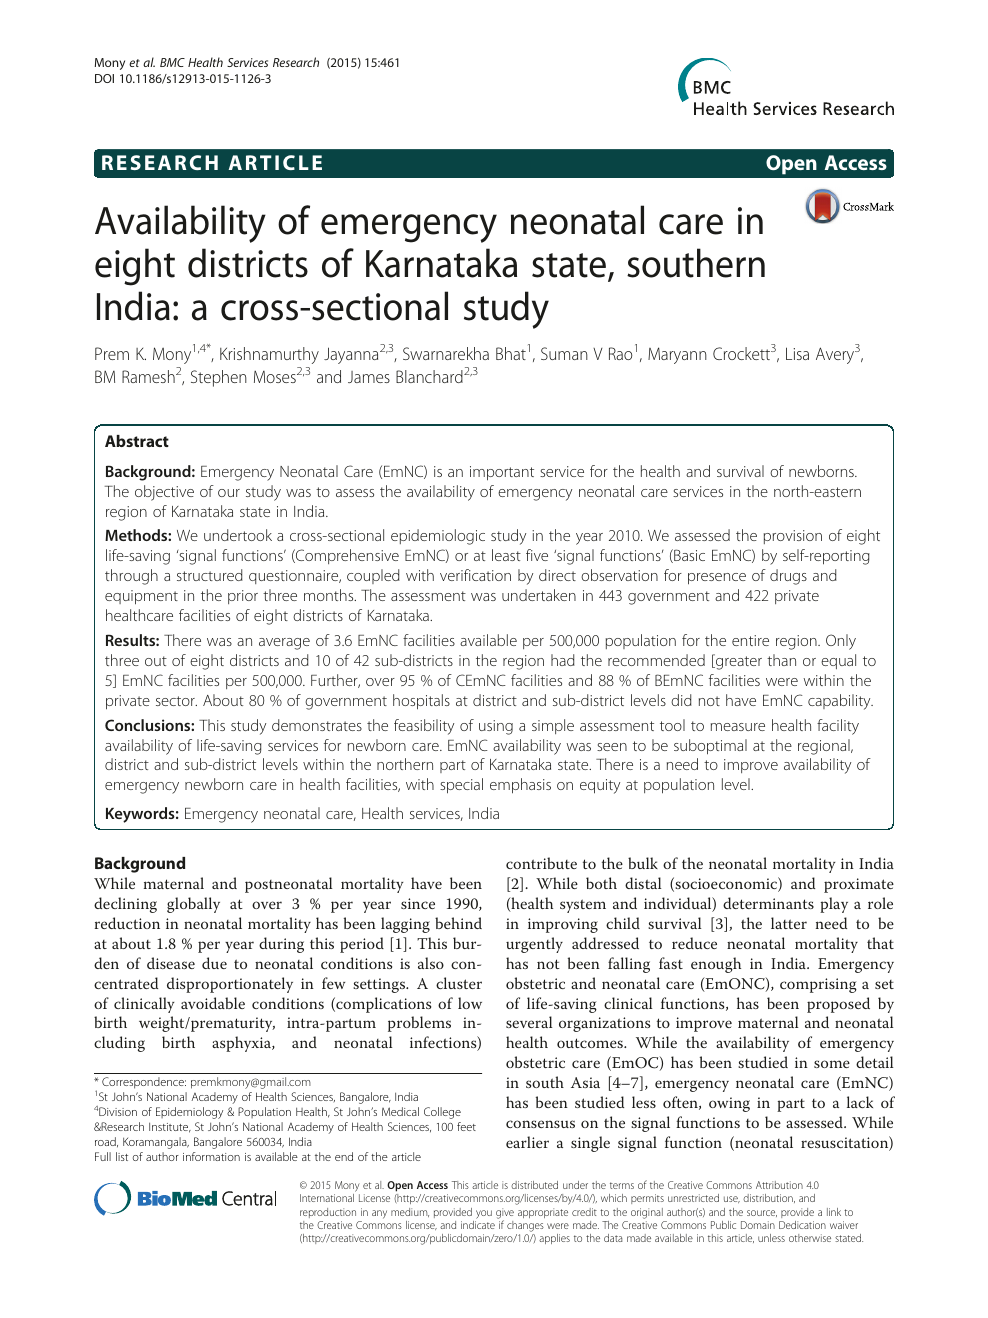 Availability Of Emergency Neonatal Care In Eight Districts Of Karnataka State Southern India A Cross Sectional Study Topic Of Research Paper In Clinical Medicine Download Scholarly Article Pdf And Read For Free